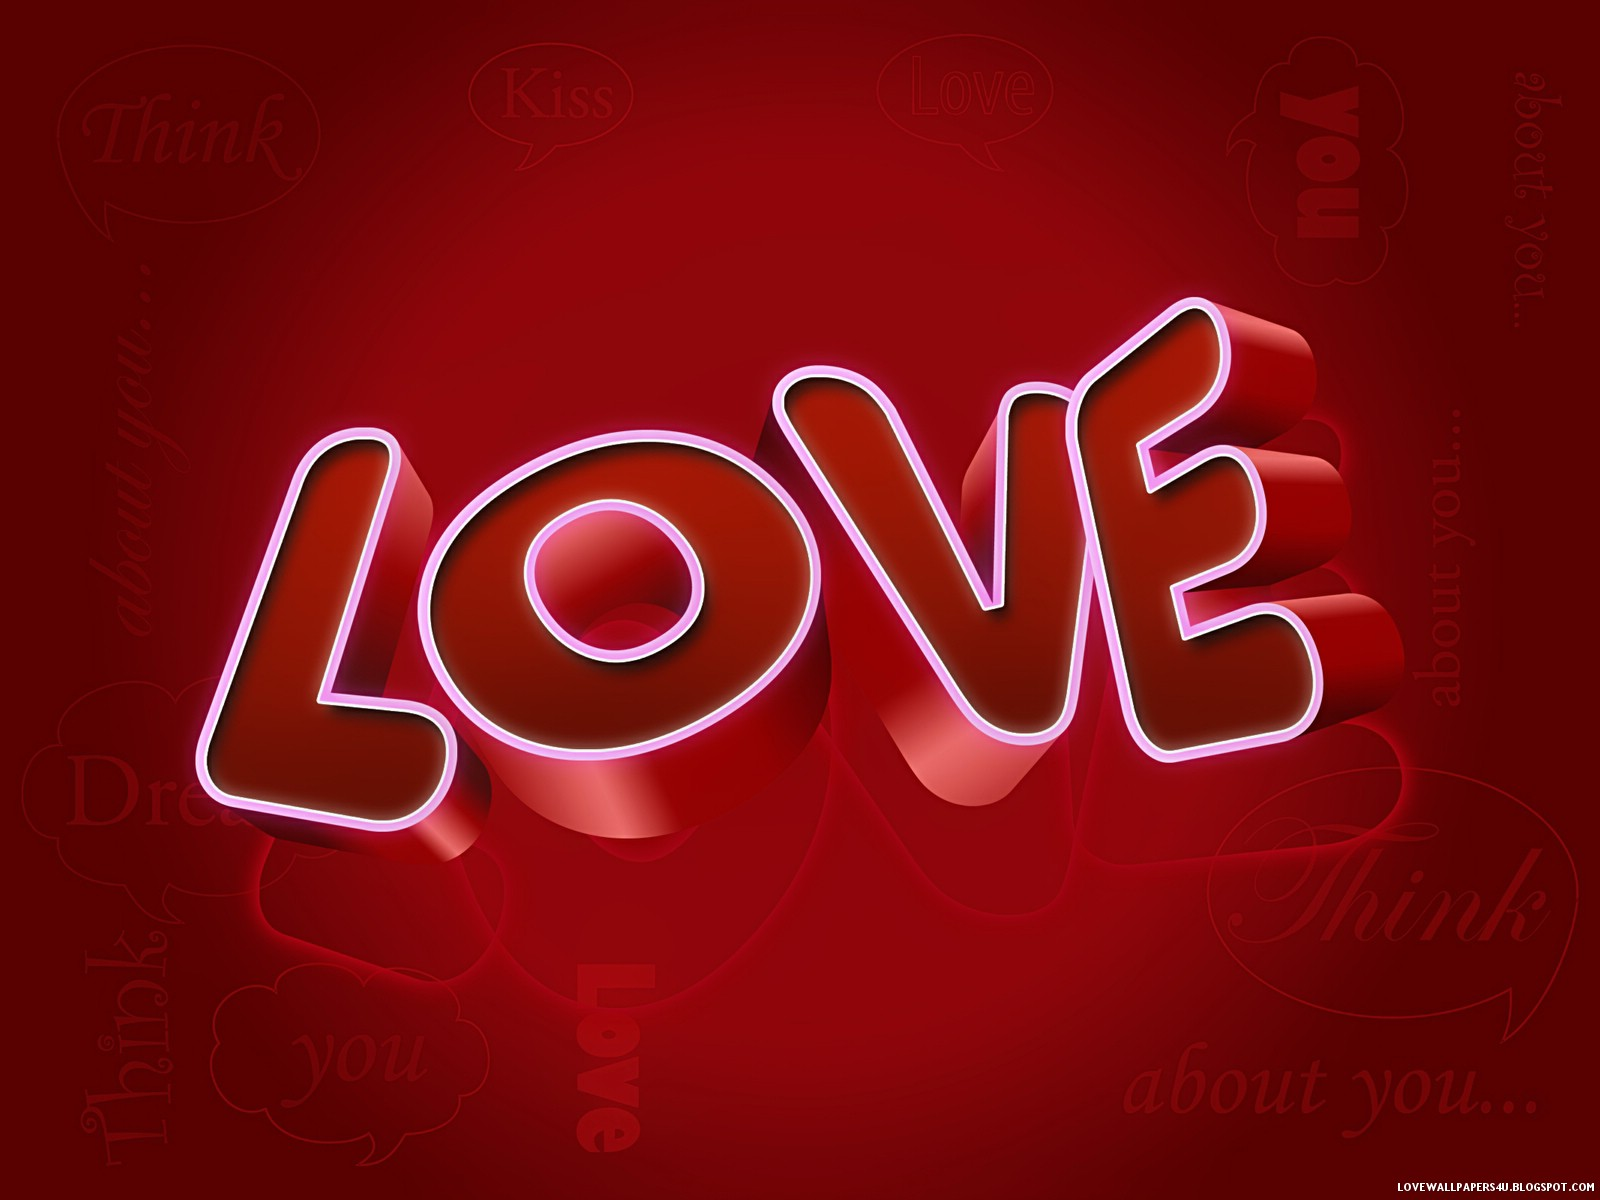 Love Wallpaper Of Alphabet A : Love Letters Love Wallpapers Romantic Wallpapers ...